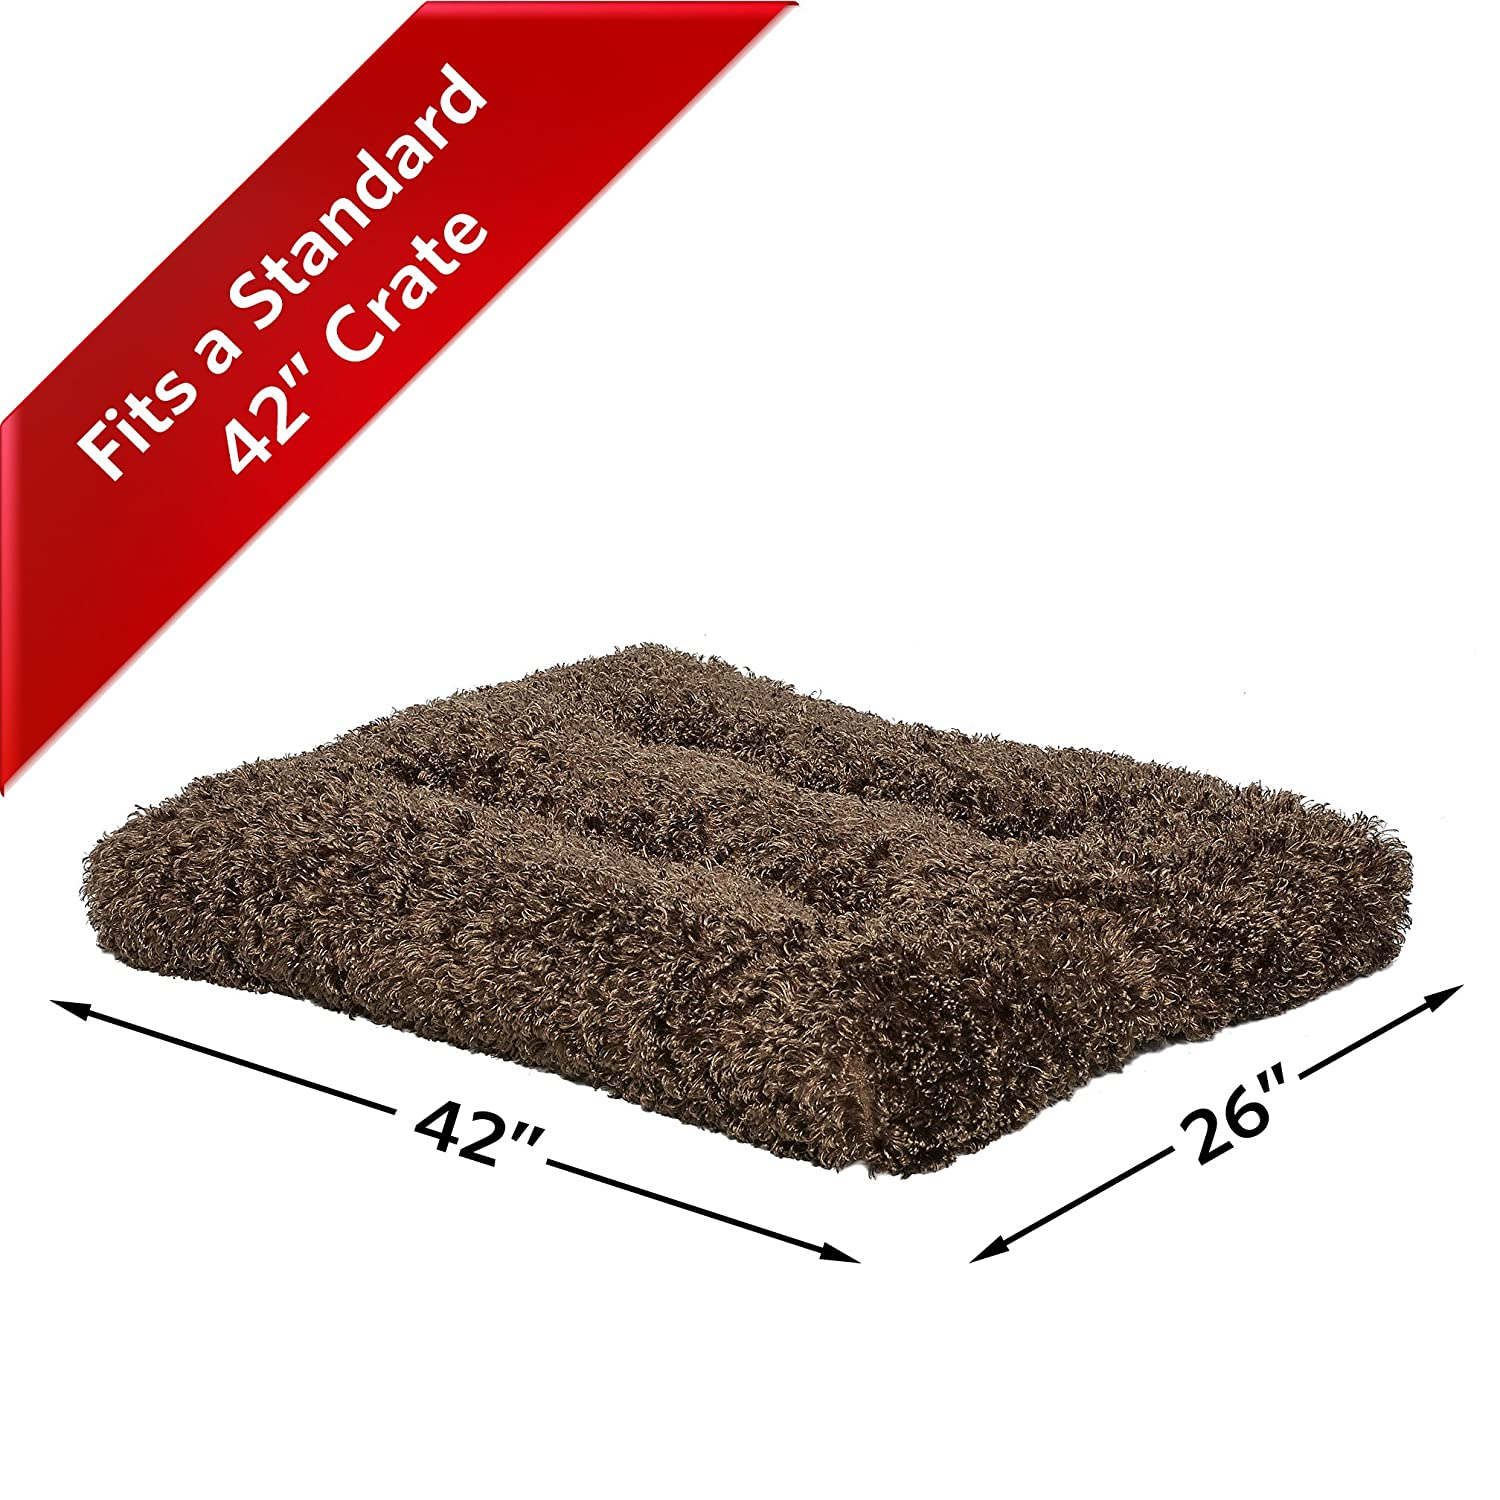 Plush Dog Bed | Coco Chic Dog Bed & Cat Bed | Cocoa 30L x 21W x 2H-Inches for Medium Dog Breeds MidWest Homes For Pets 40630-CC